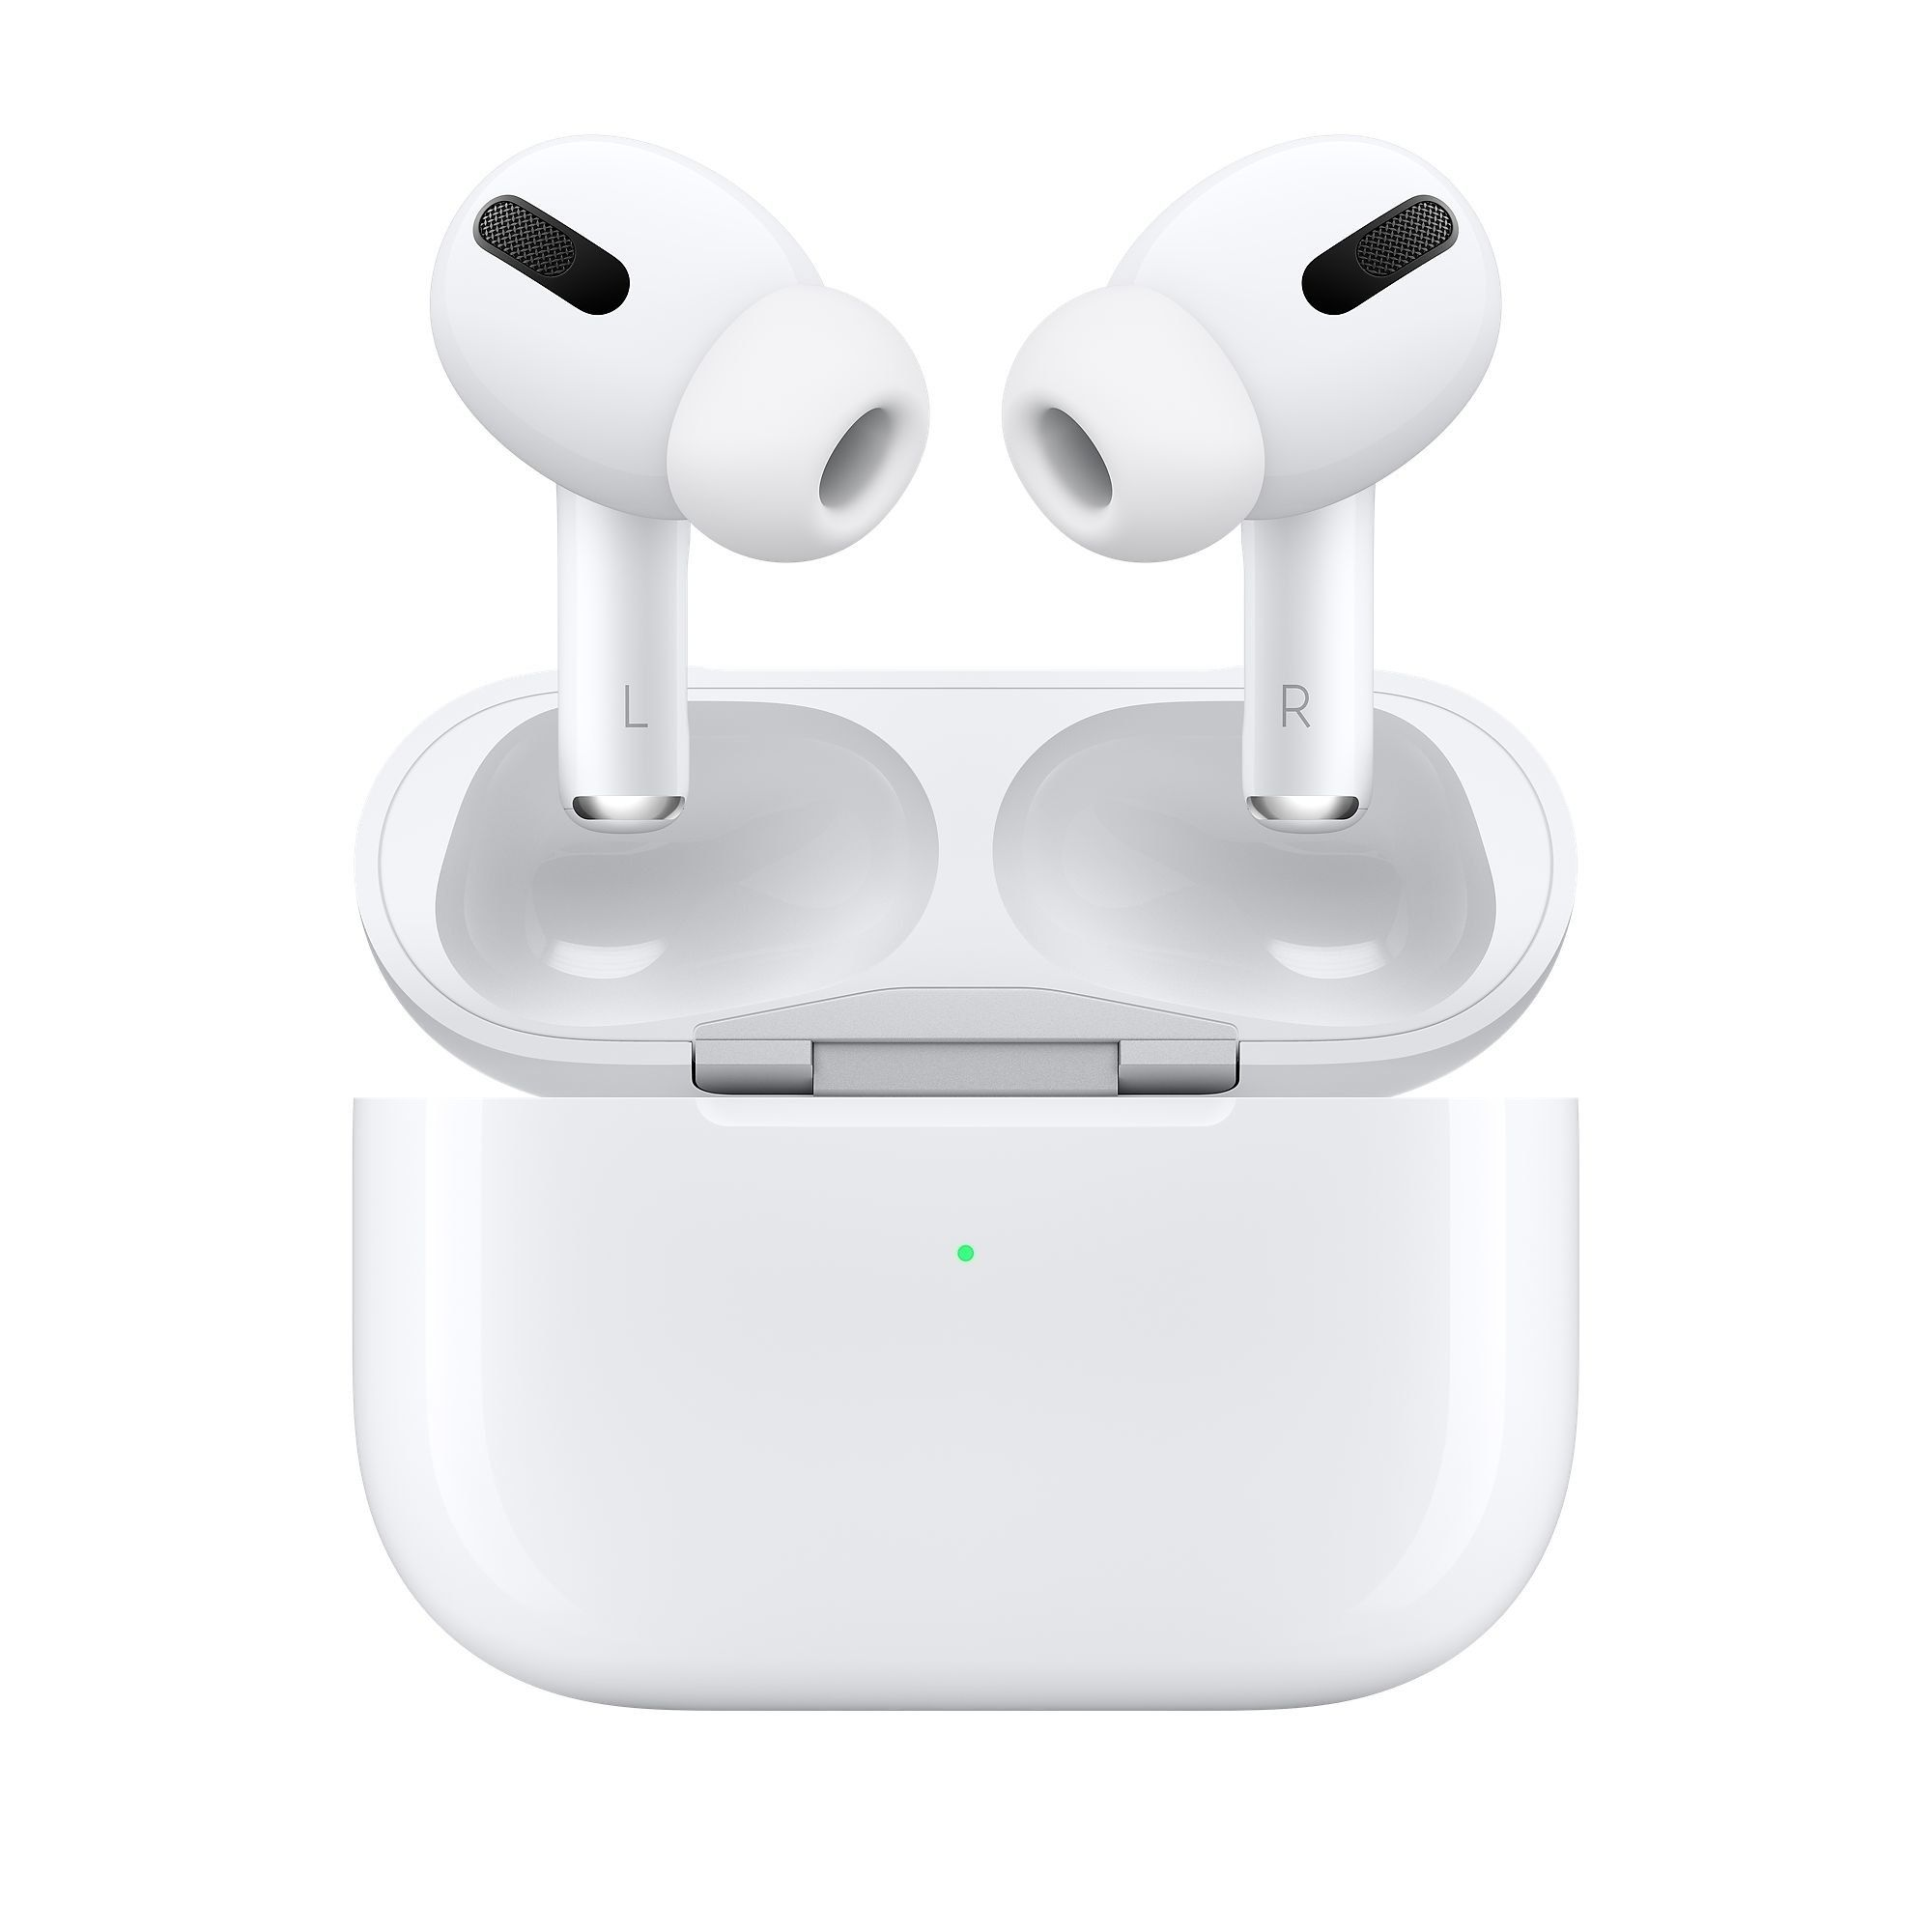 Airpods Pro Because These Beauts Are More Than Just A Meme They Re Actually Worth The Splurge For Anyone Who S Tired Of Mediocre Headphones Airpods Pro Noise Cancelling Active Noise Cancellation